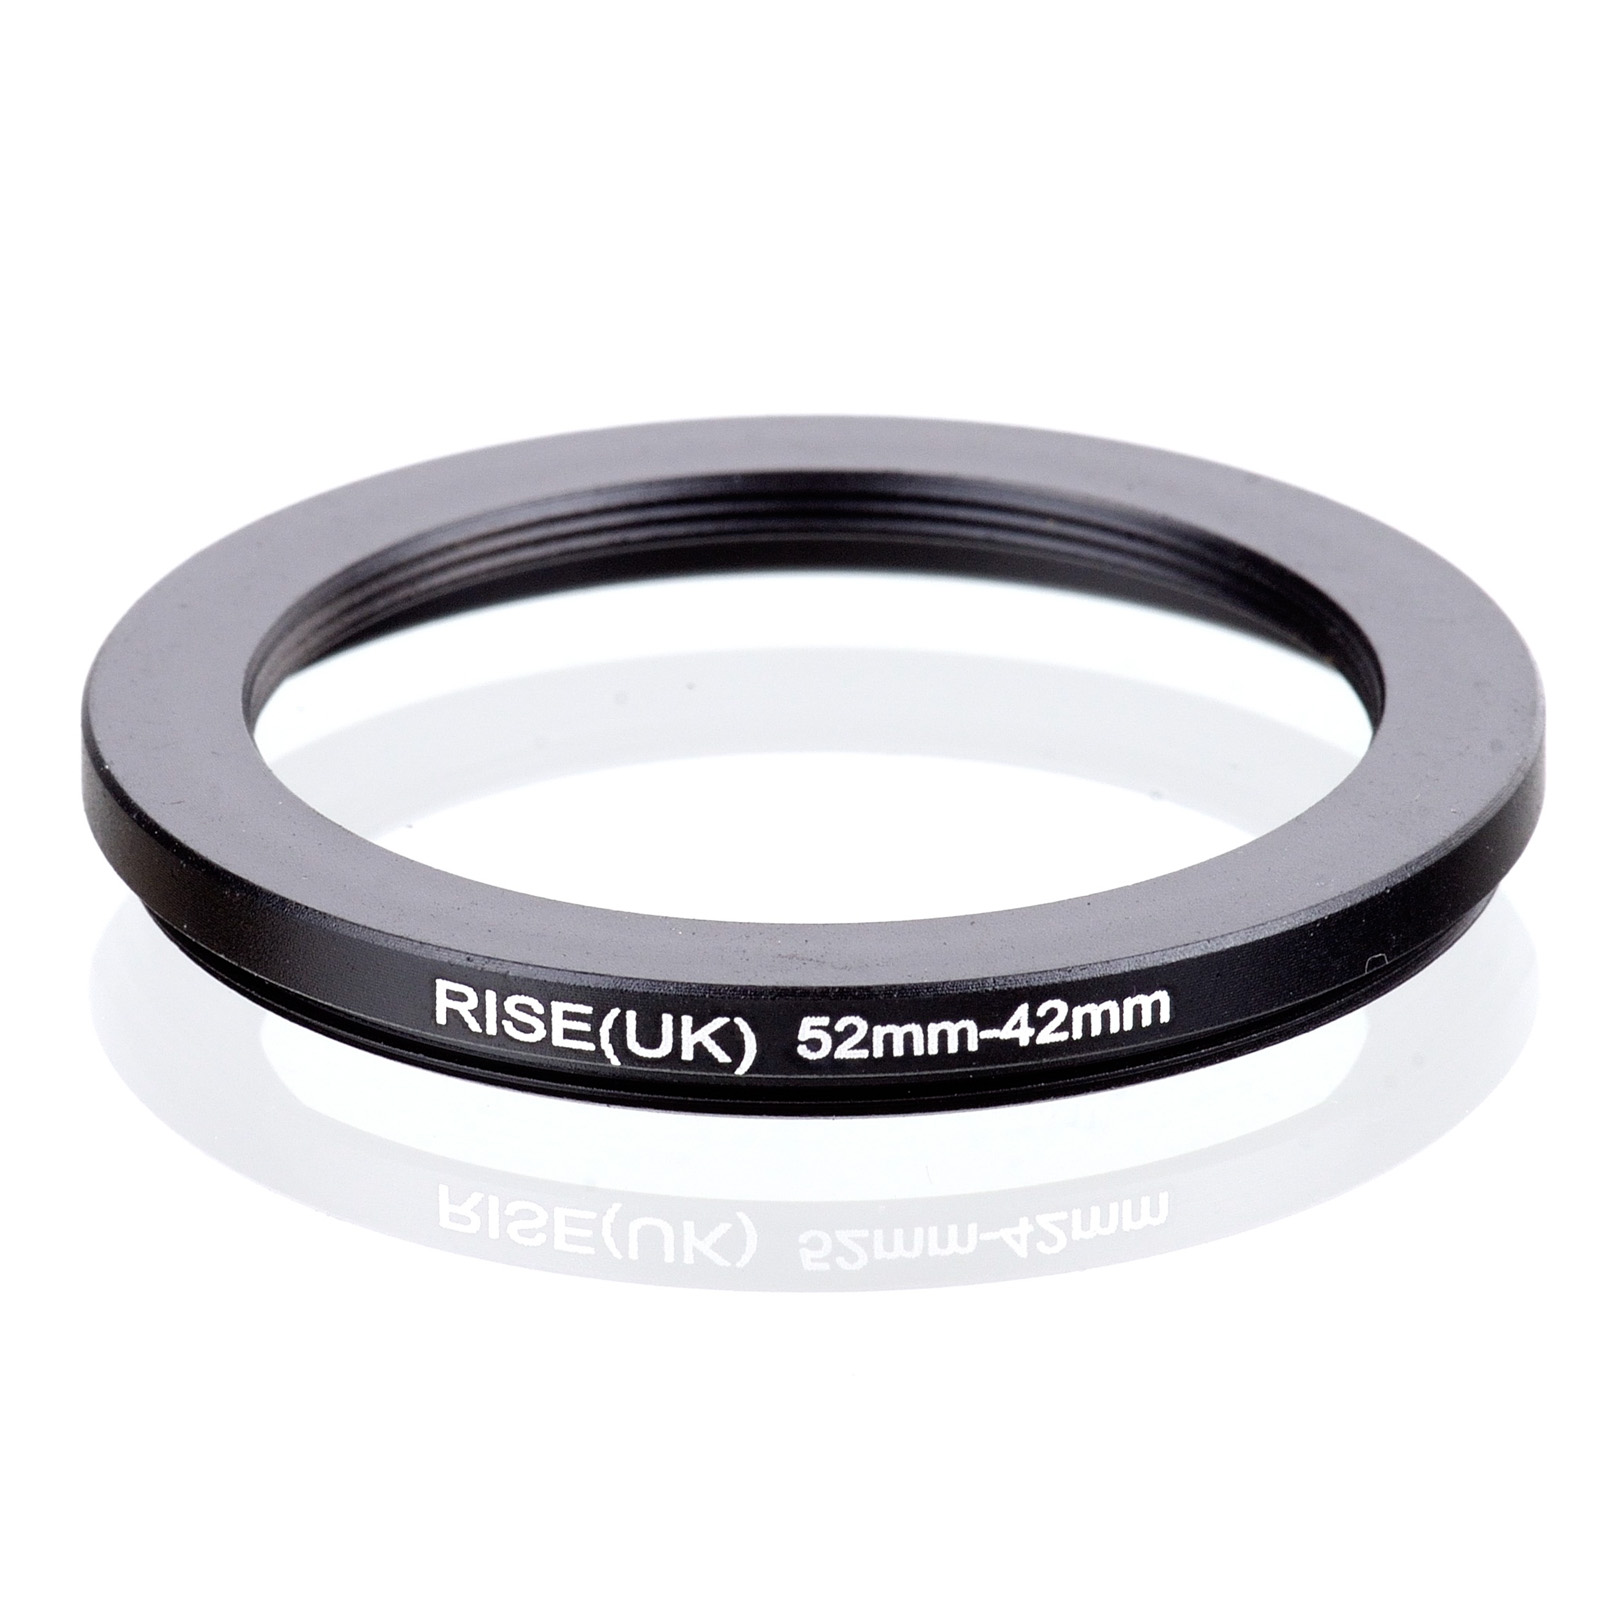 52mm-42mm 52-42 mm 52 to 42 Step down Filter Ring Adapter free shipping